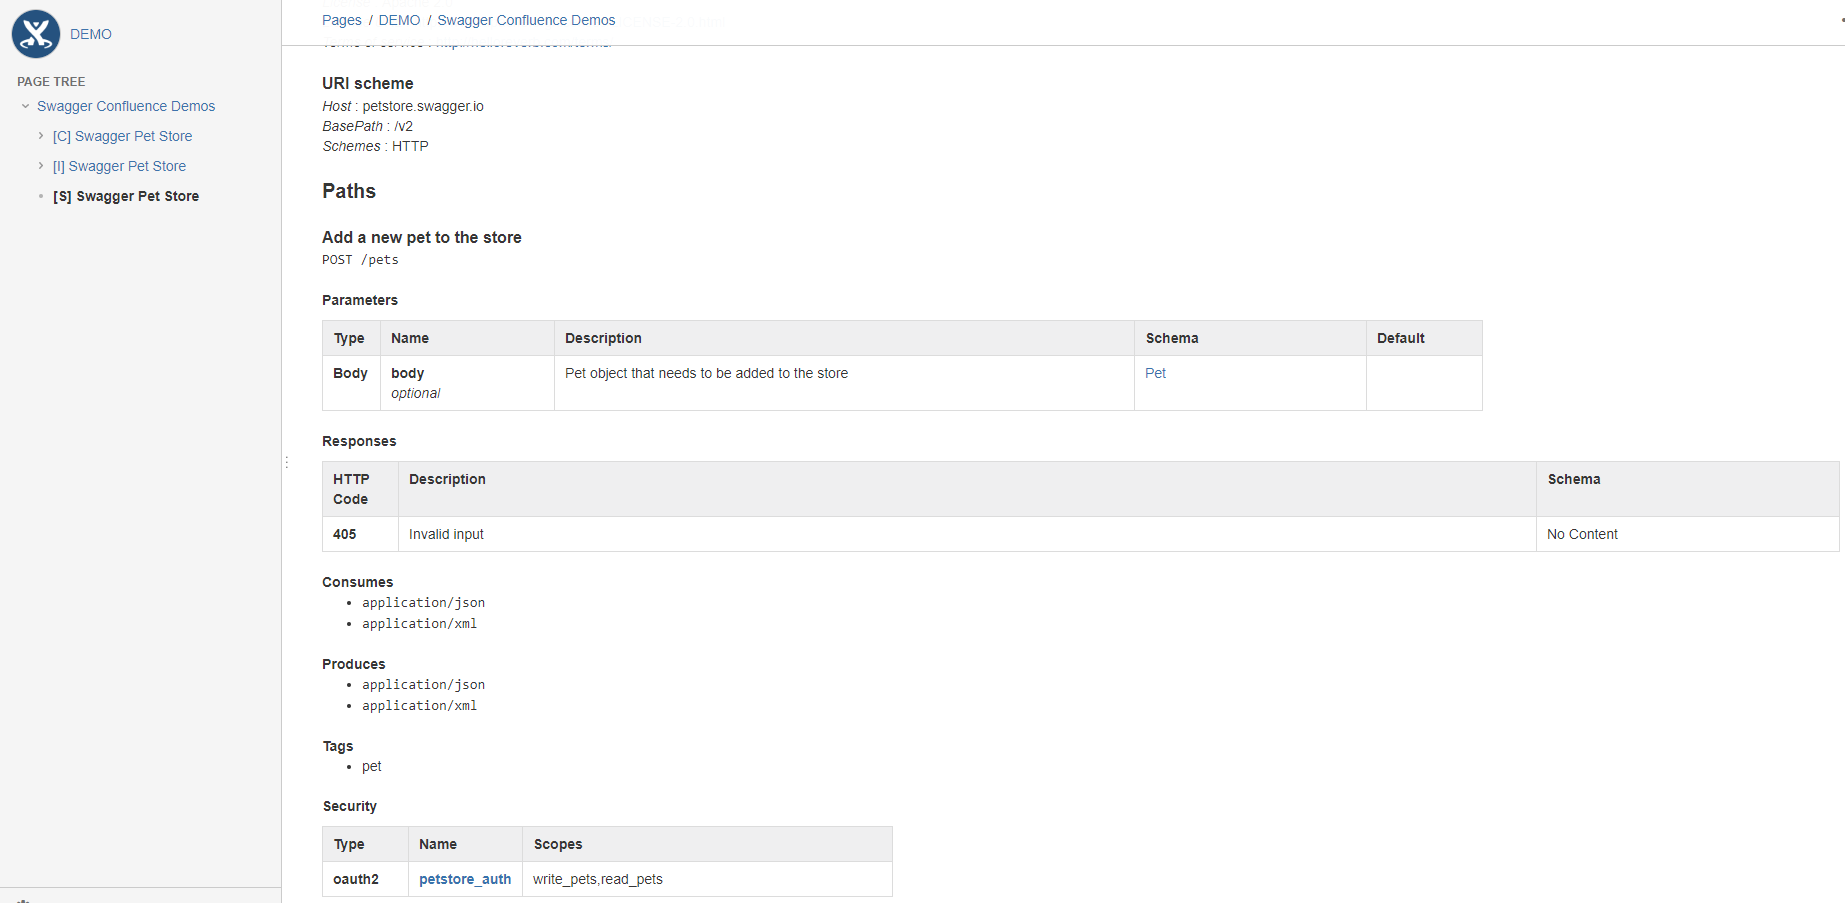 Publishing Swagger API Documentation to Confluence during Release